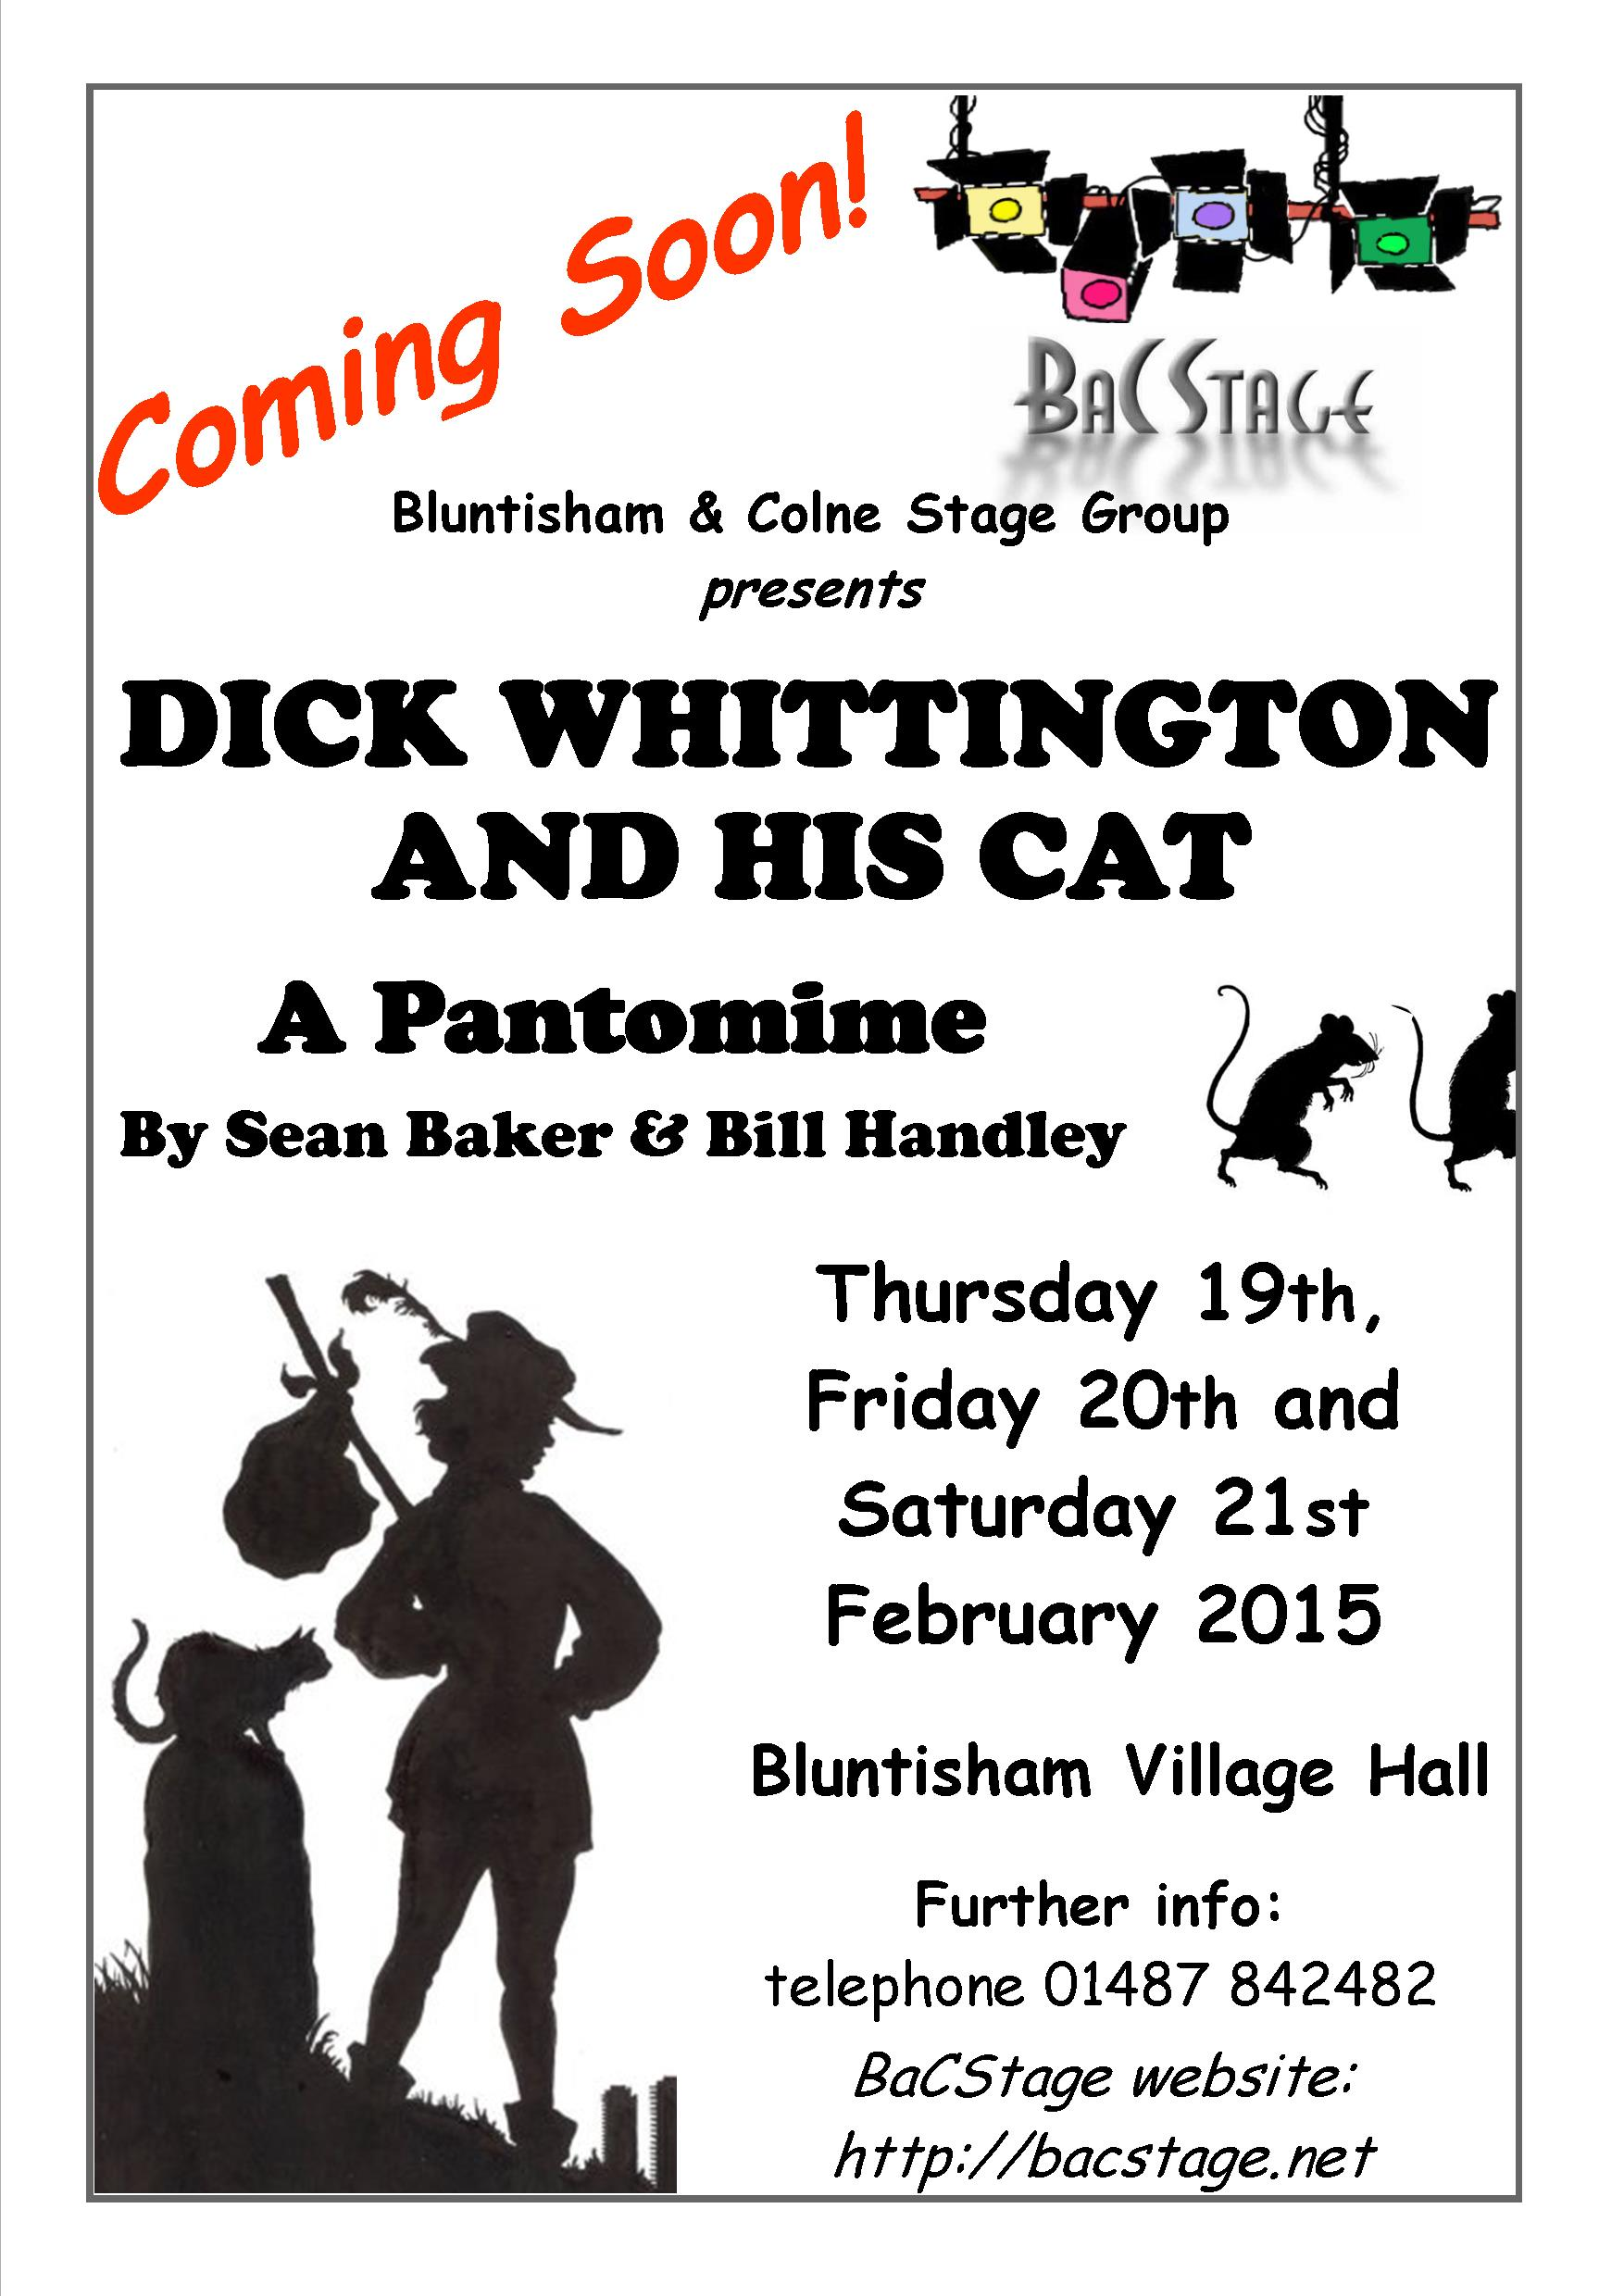 Coming Soon - Dick Whittington and his Cat